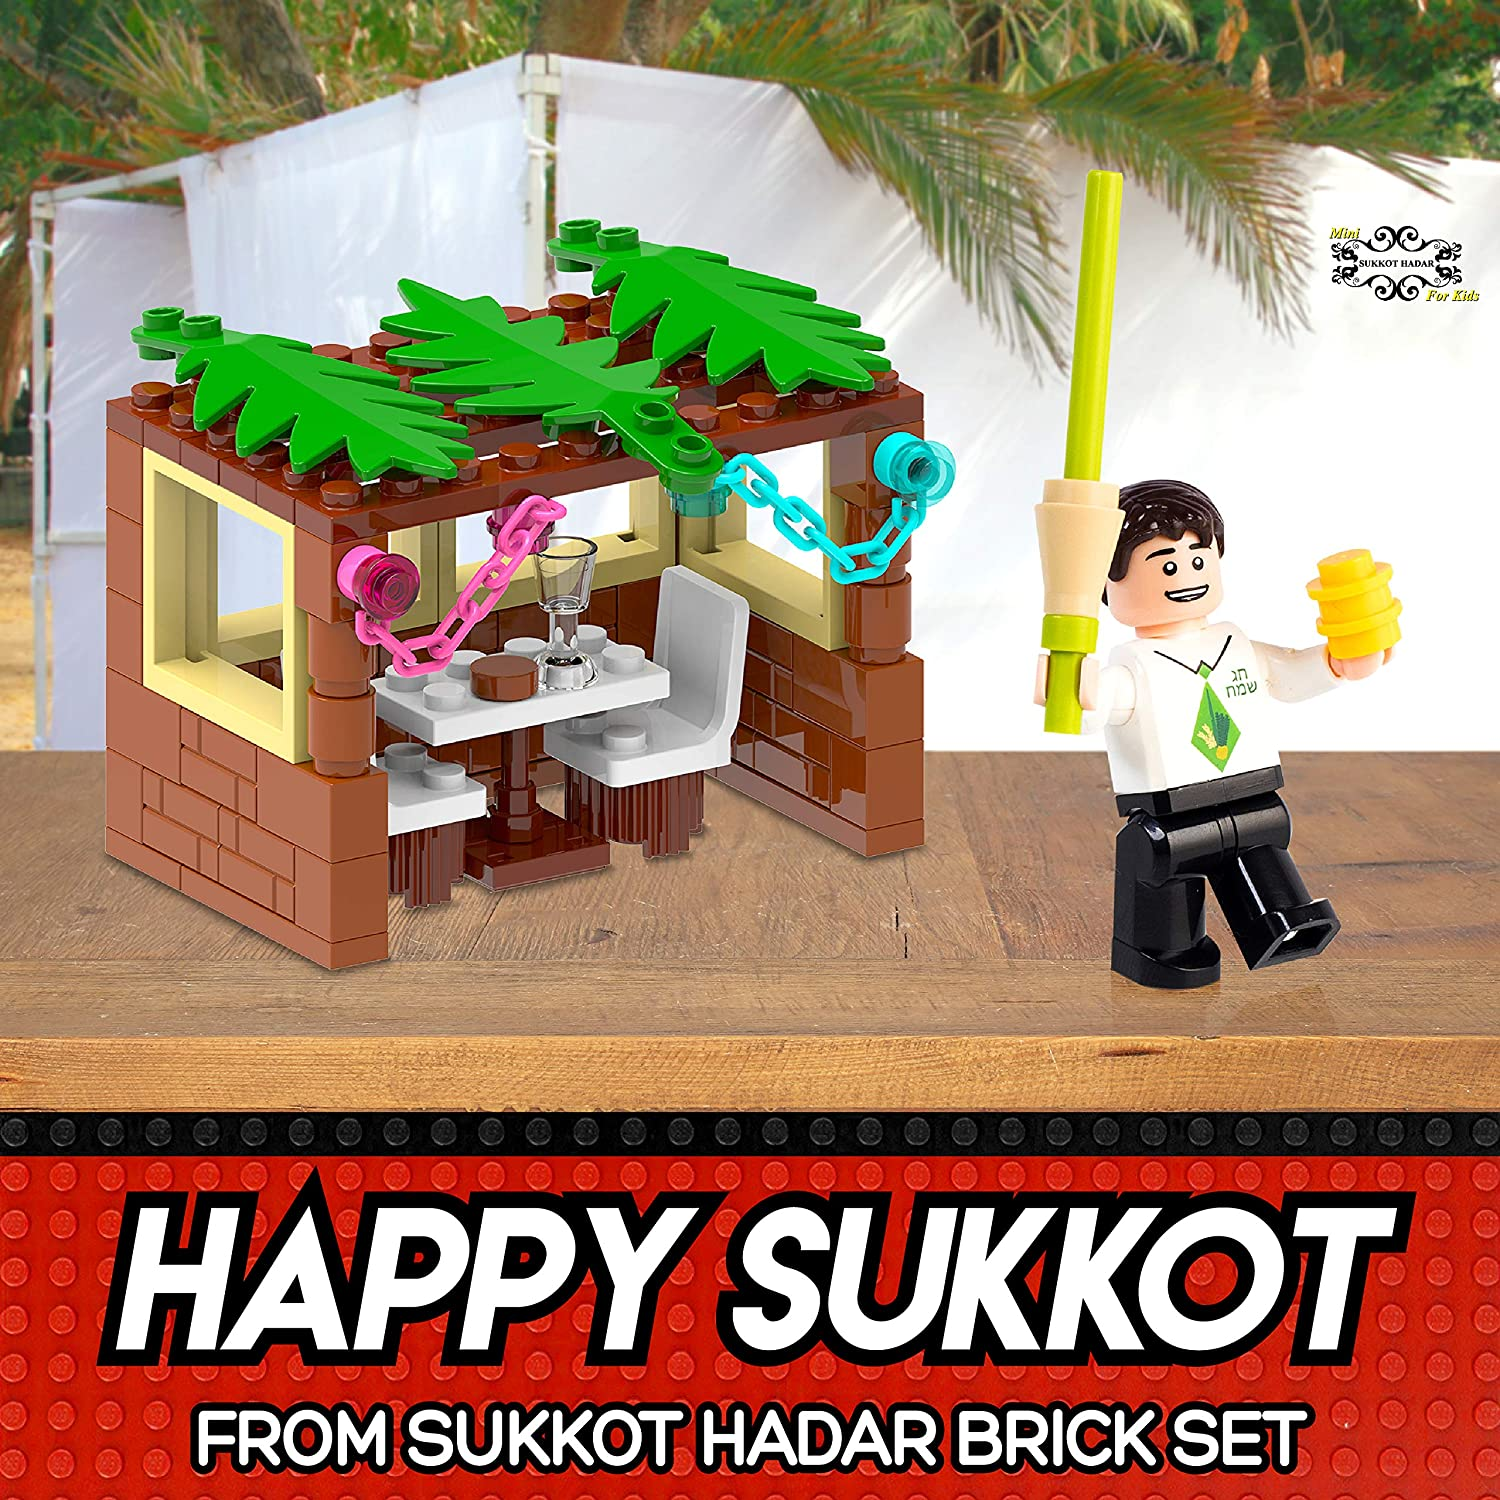 Hut Booth Manufacture Direct Prices Kosher Certified Succah Jewish Holiday Ornaments Sukkah Company from Israel Sukkot Hadar